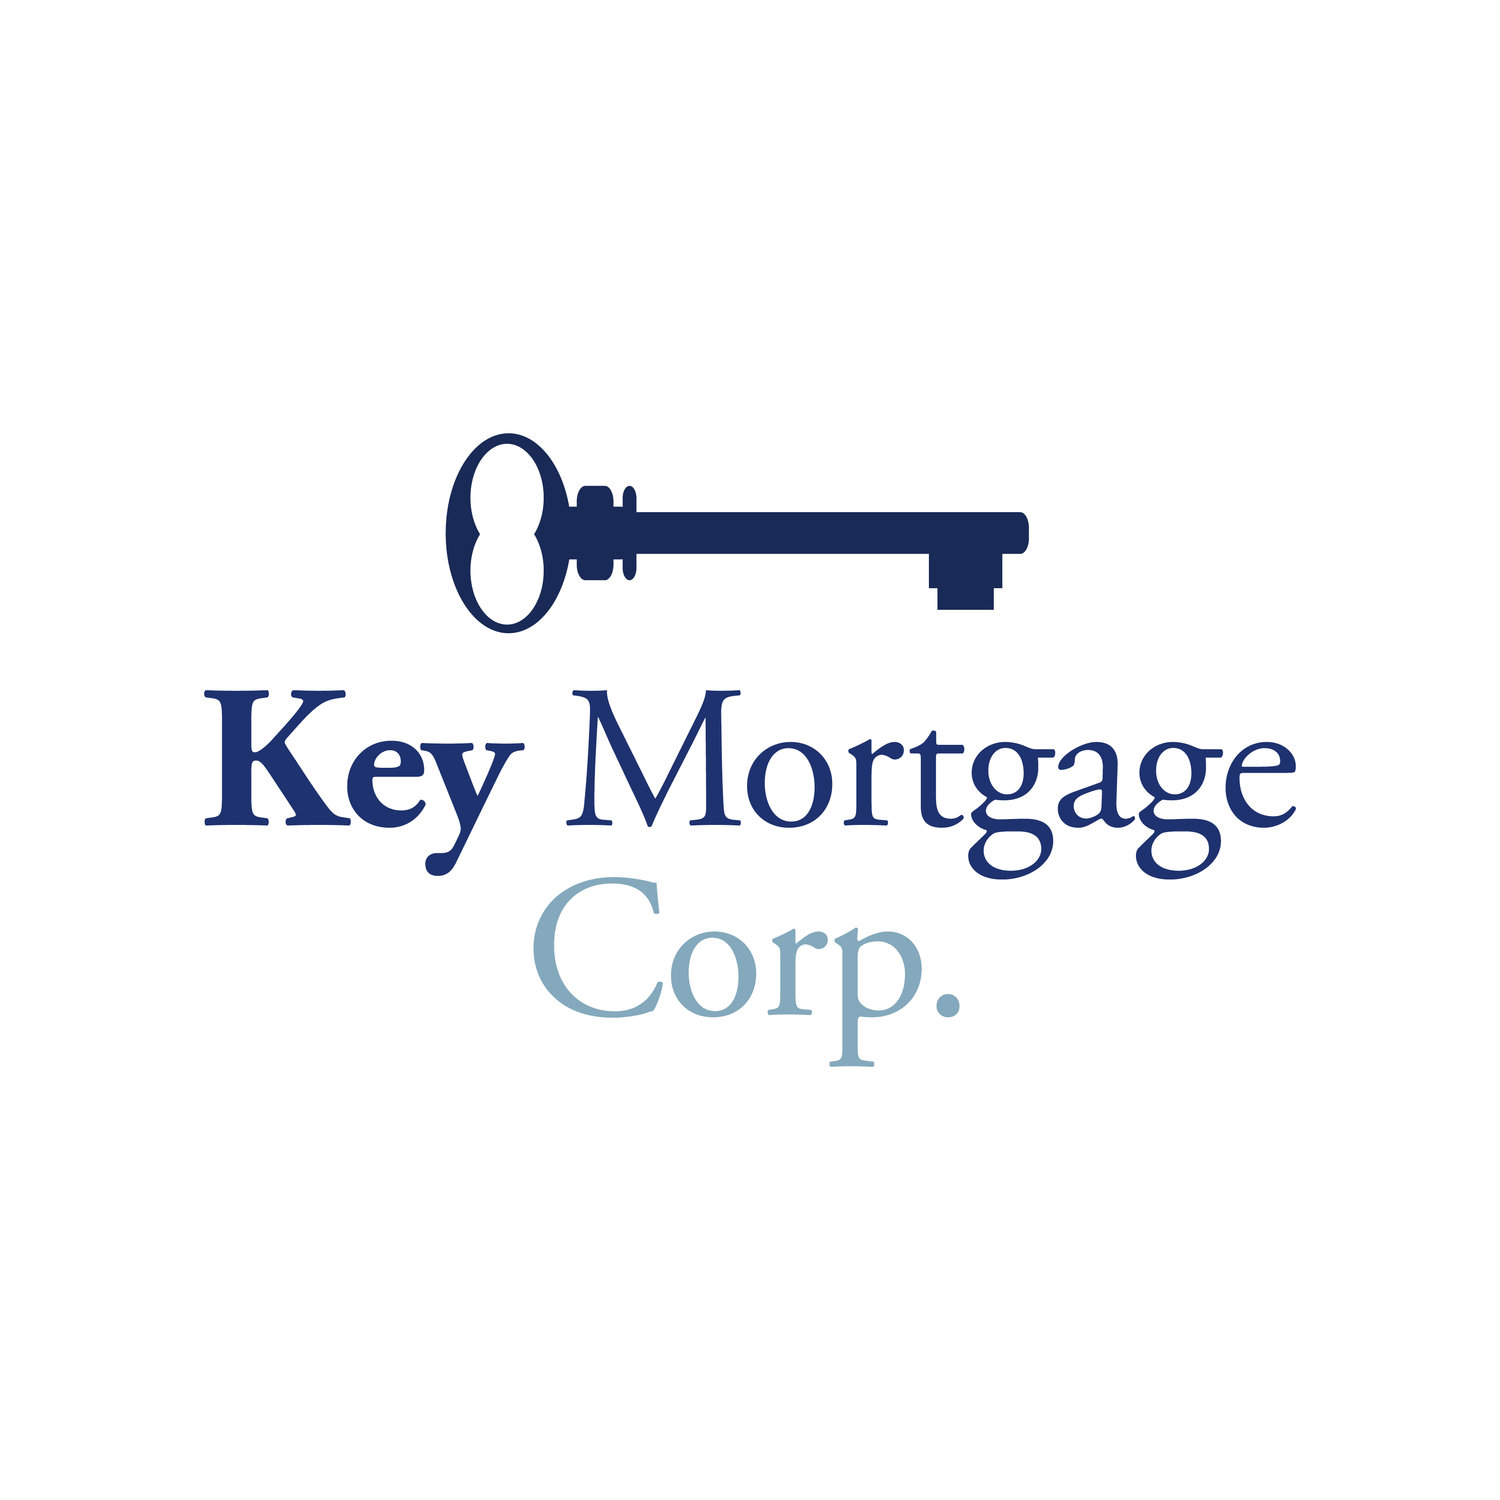 Key Mortgage Corp